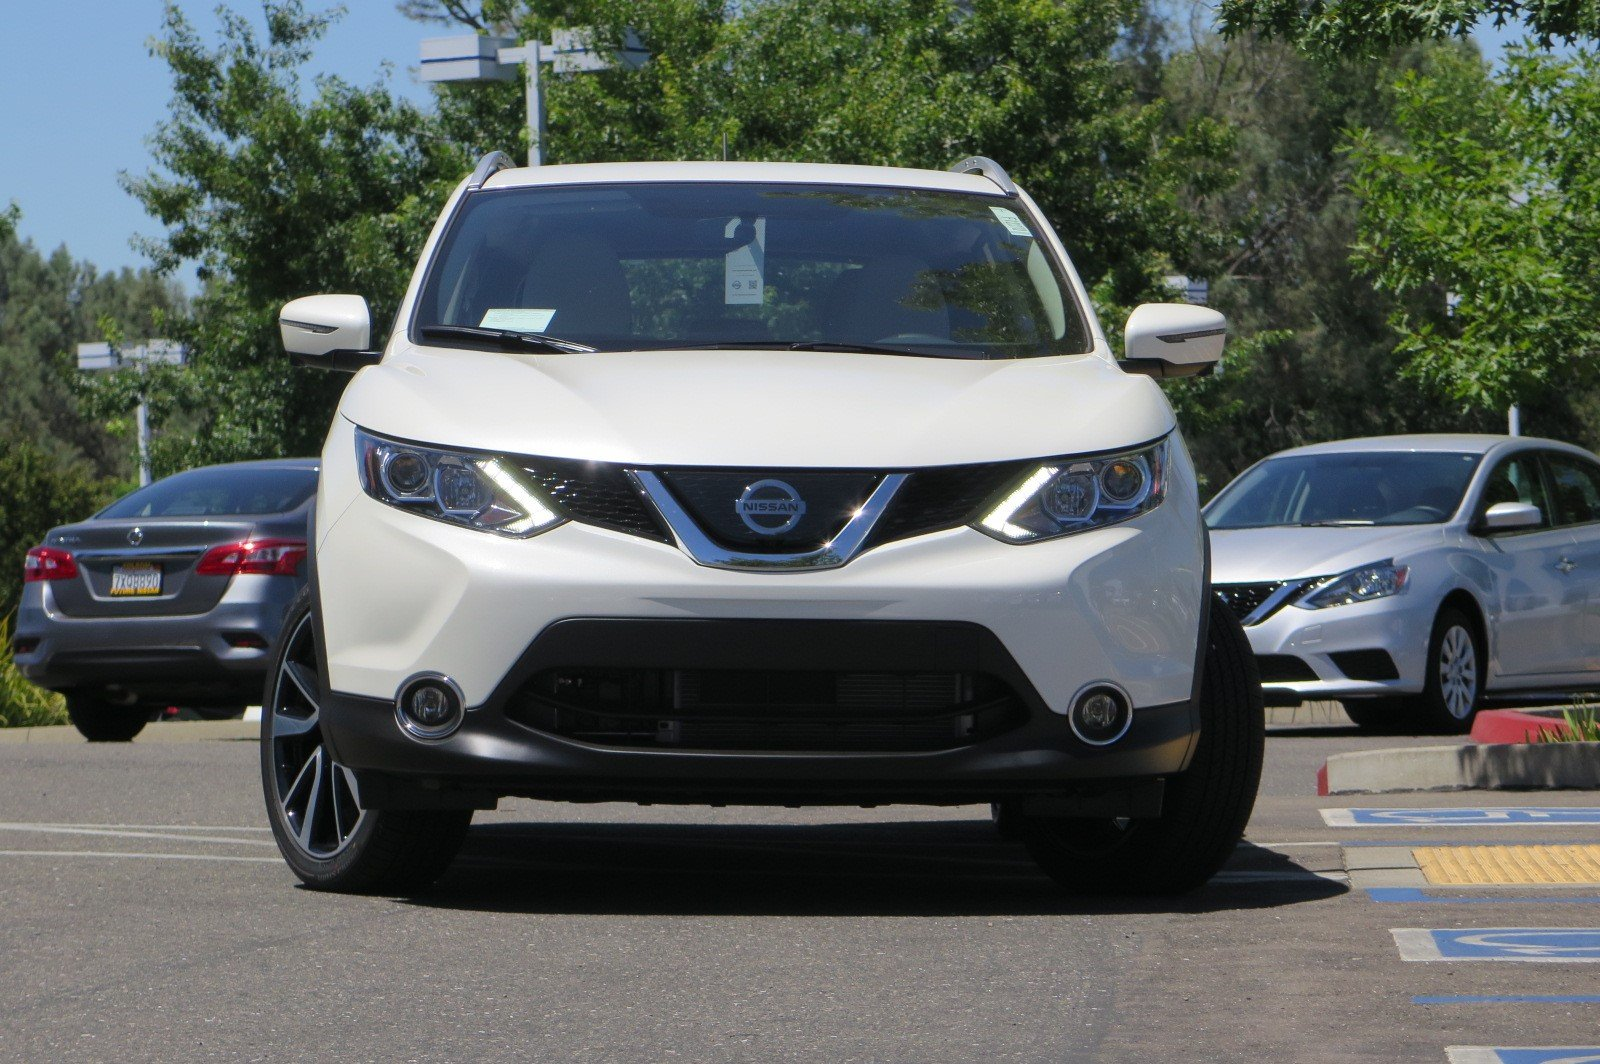 Nissan Rogue Owners Manual: Air conditioner operation